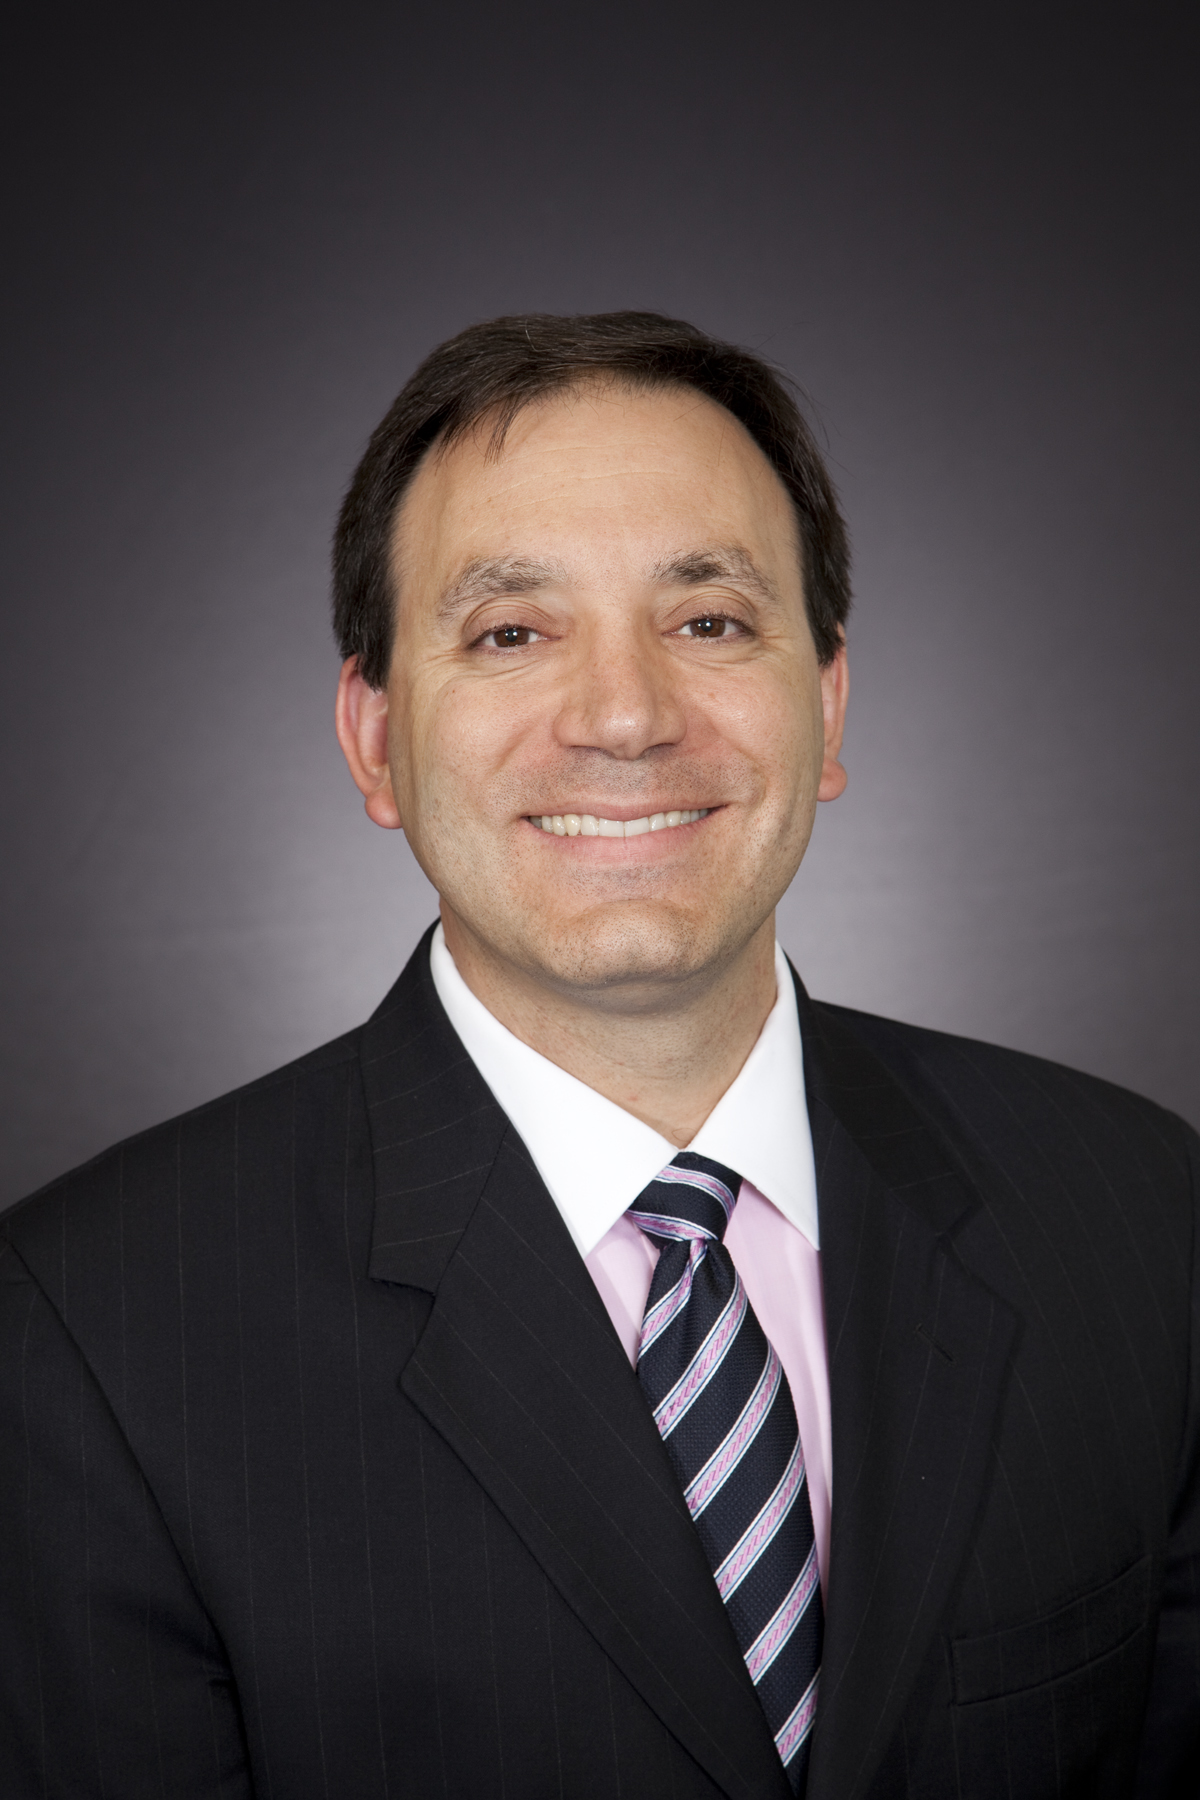 ROBERT ARTHUR MASSA's advisor photo